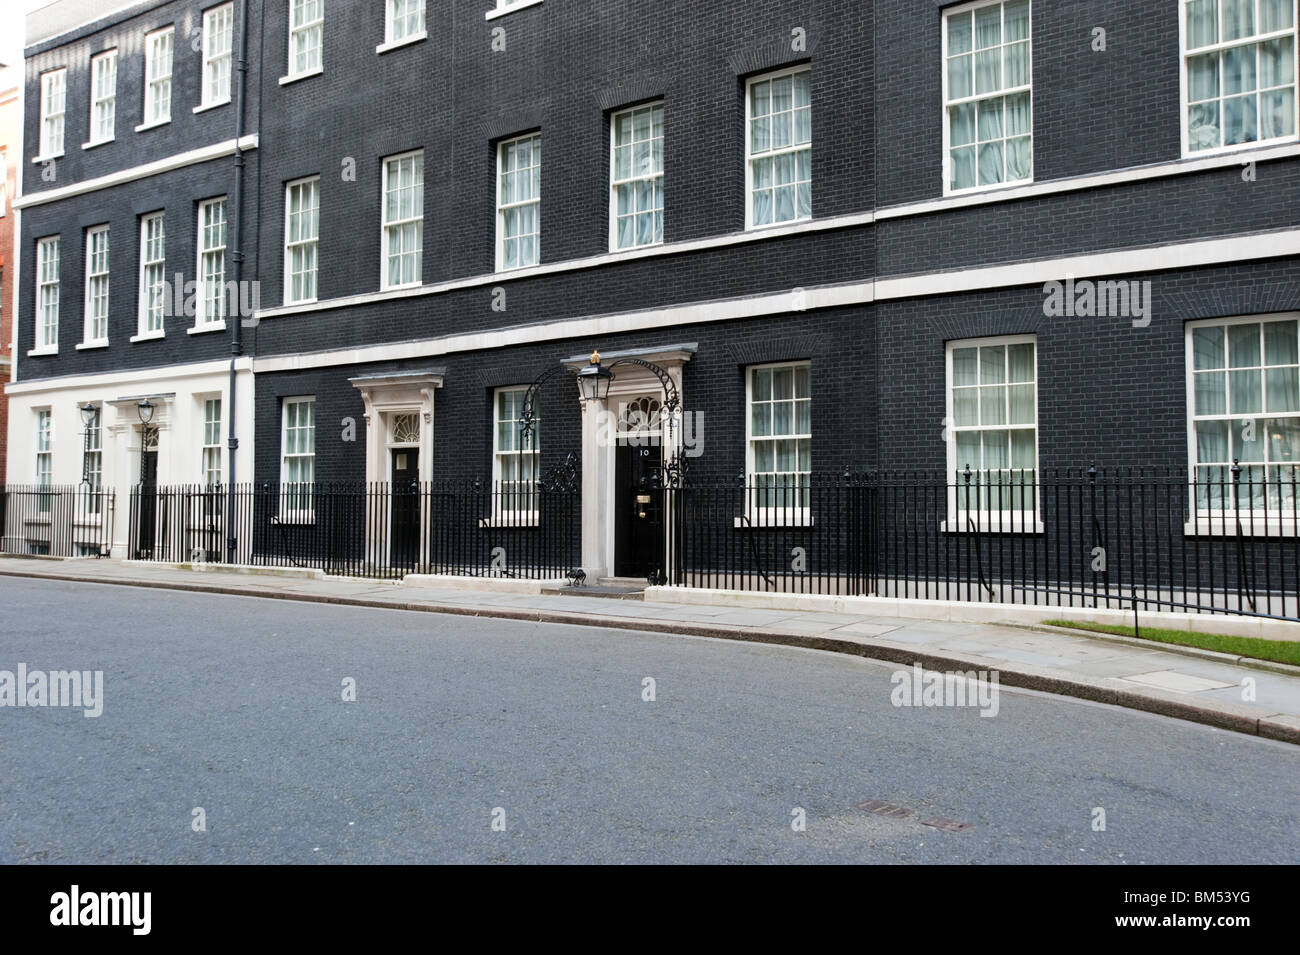 10 Downing Street, London, England, UK - Stock Image